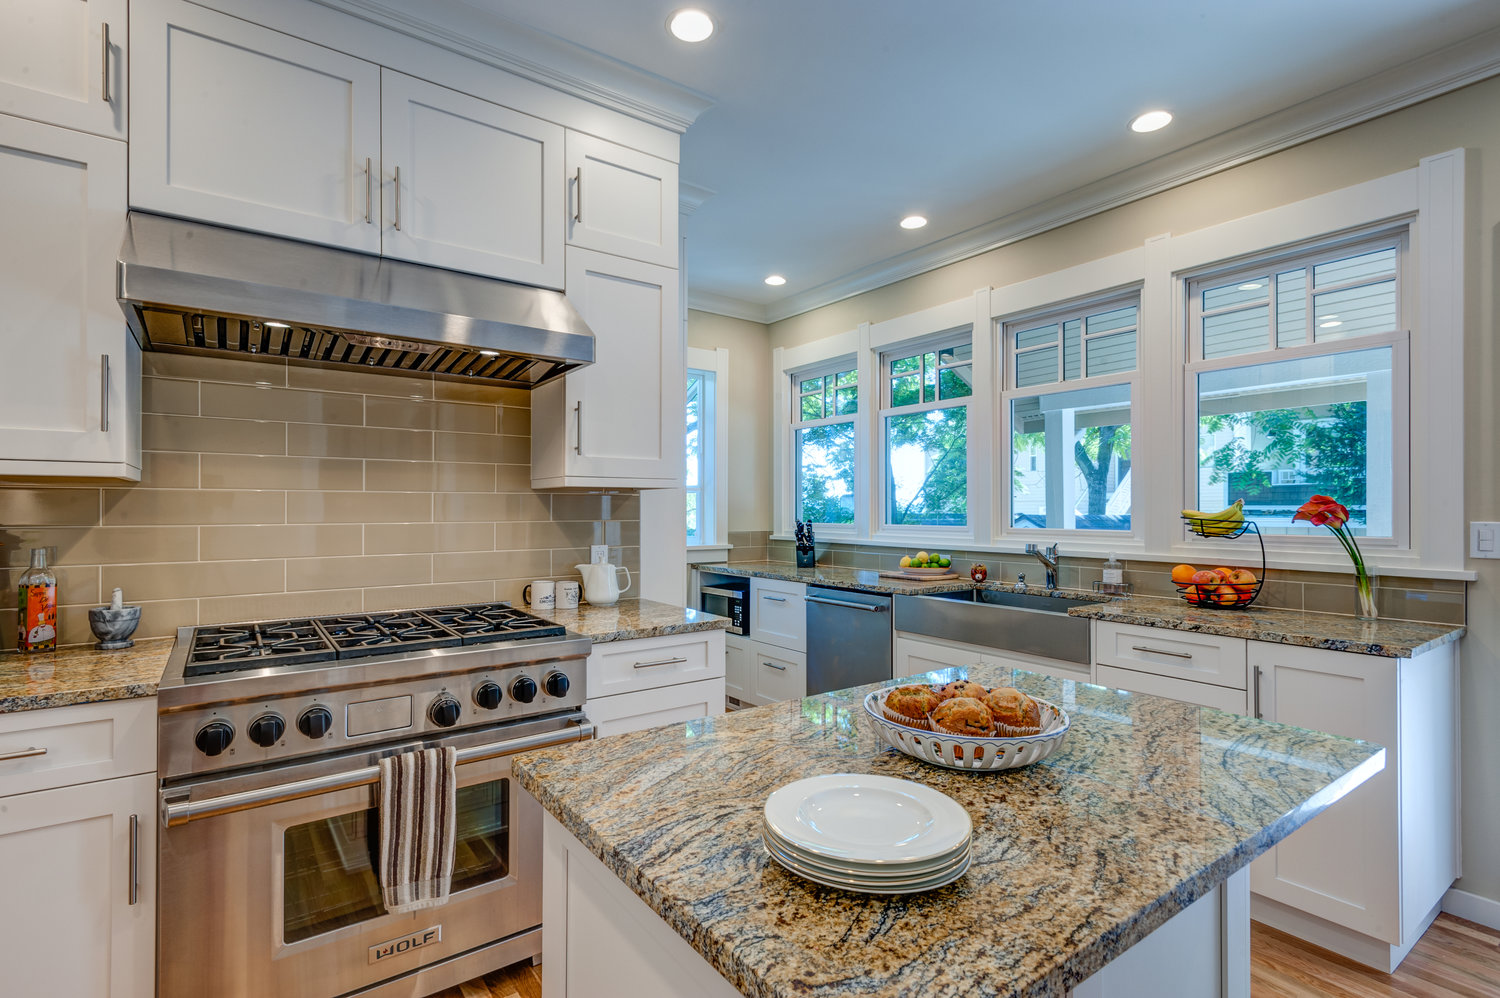 2017 Homes — Remodeled Homes Tour